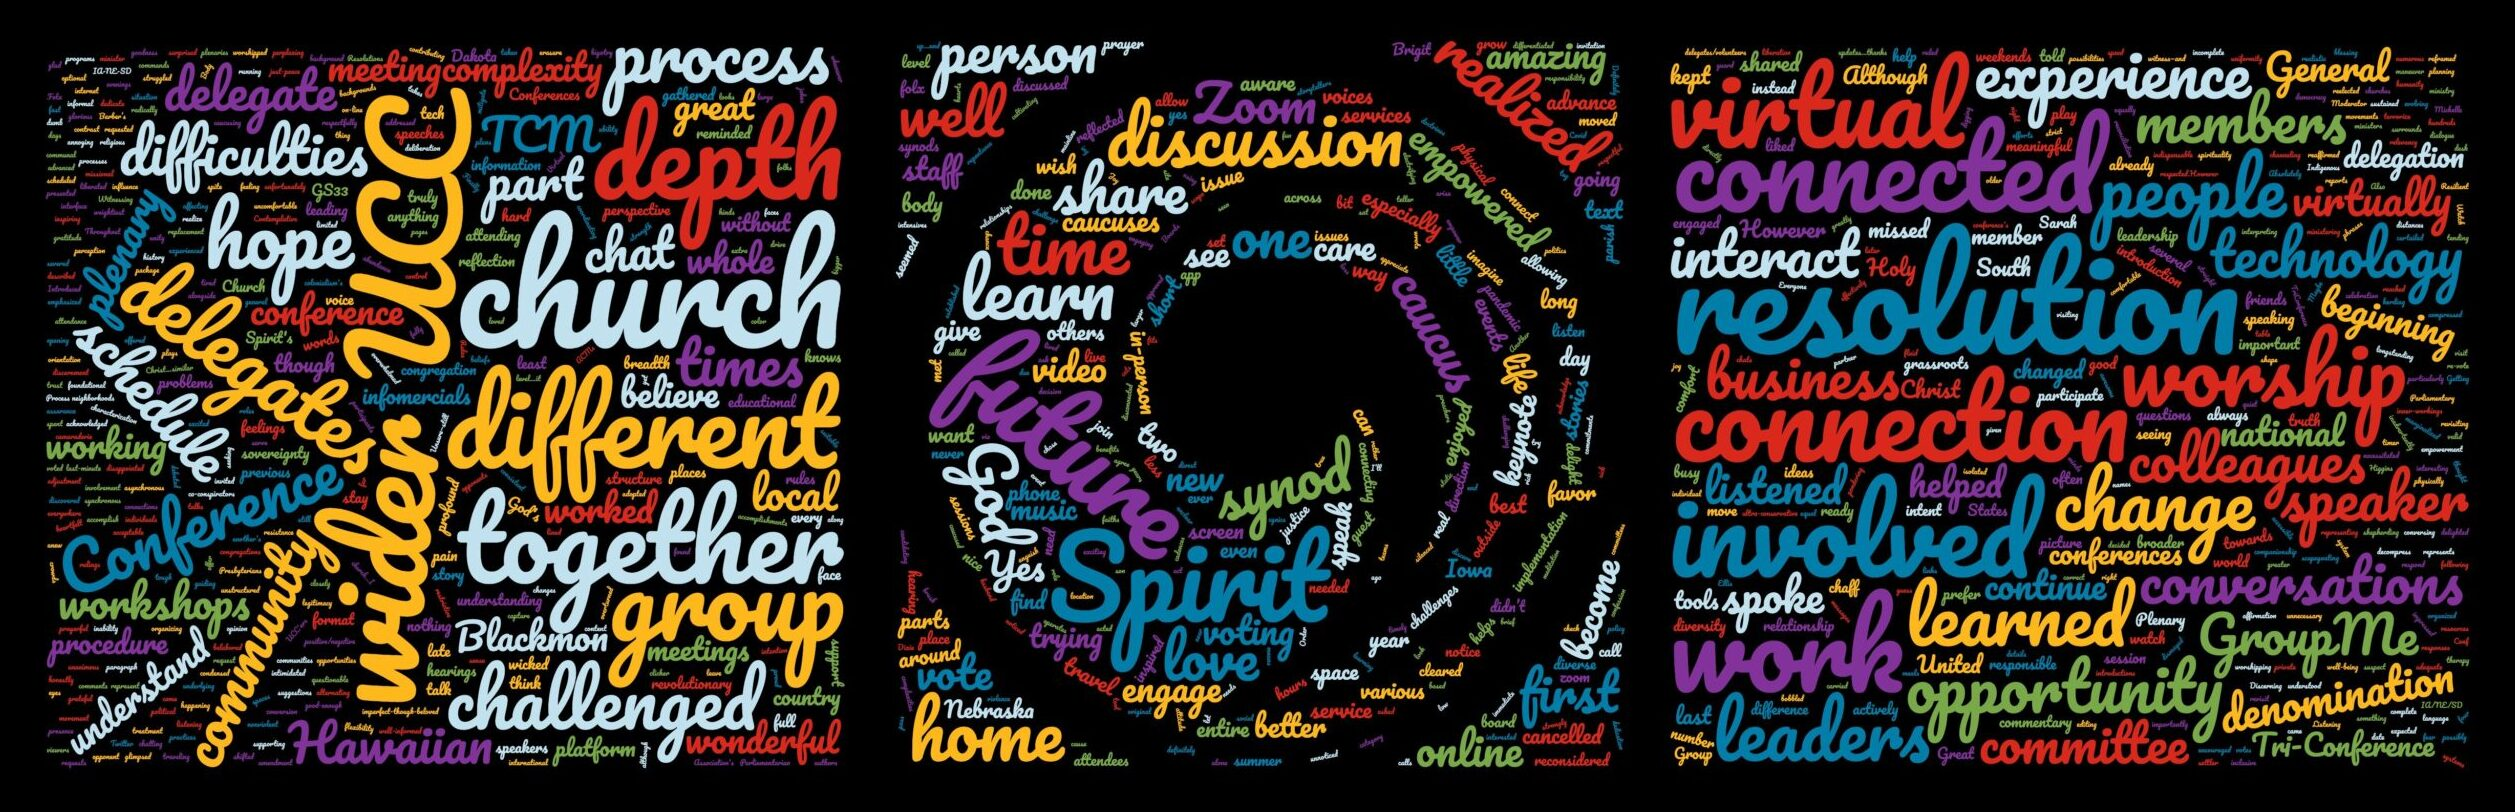 A collage of all of the most used words in the GS33 reflections in the shape of the UCC comma. Words include wider UCC, church, depth, future, Spirit, connection, resolution, virtual, love, different, together, group, challenged, Conference, hope, difficulties, work, worship, change, leaders, and conversations.